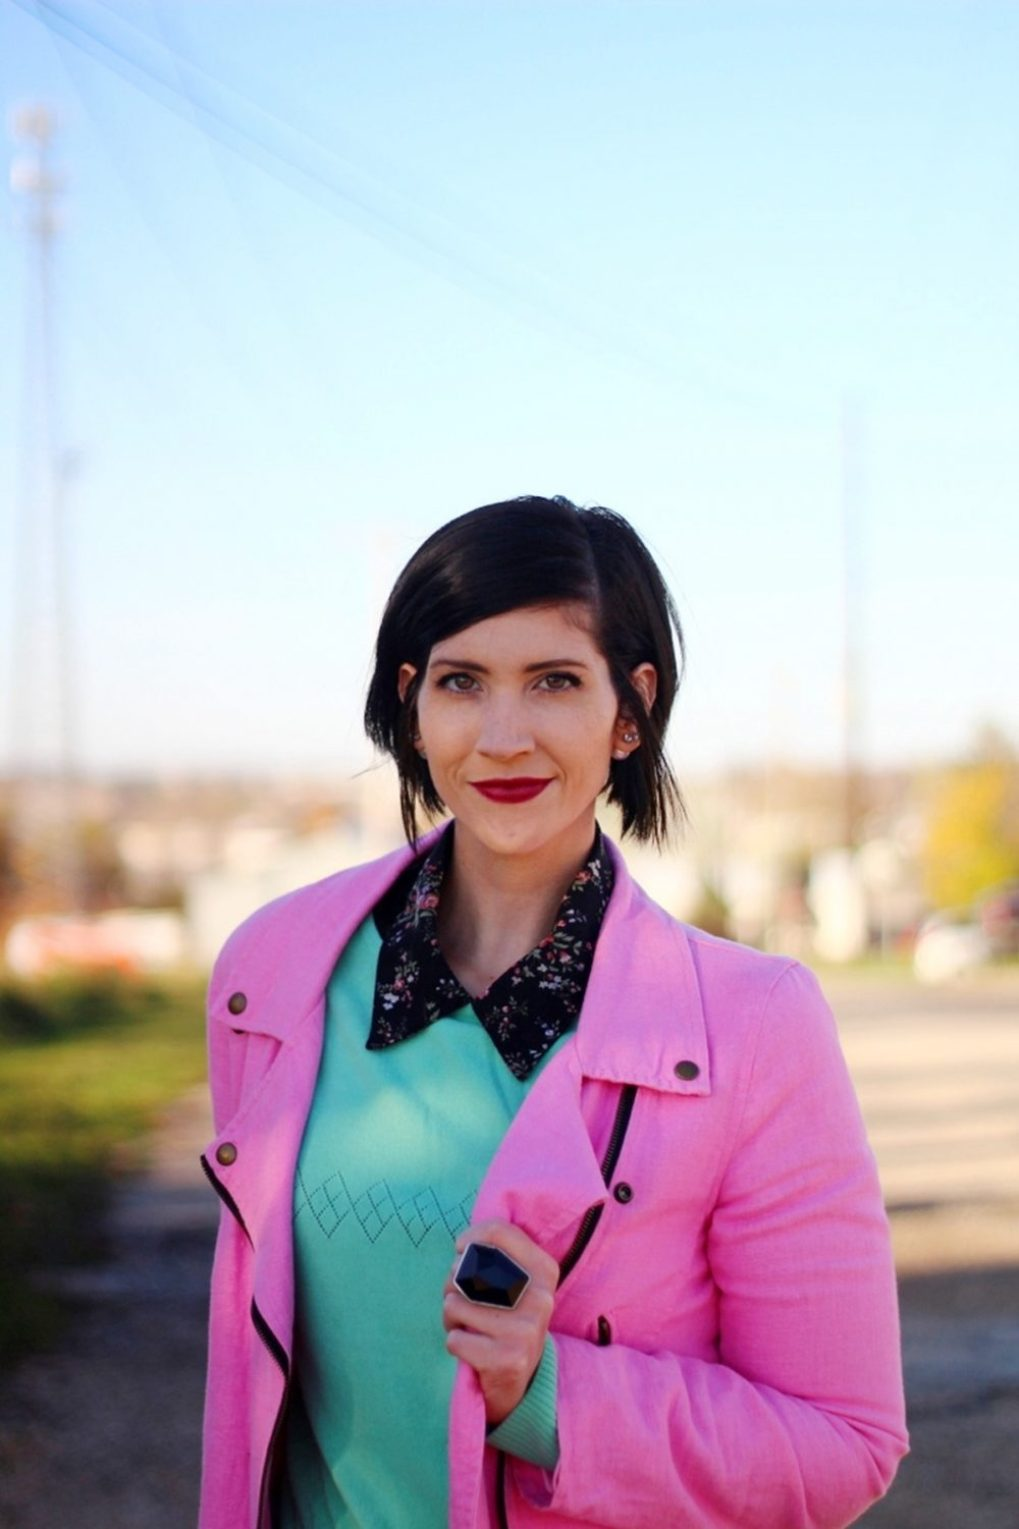 Outfit: Floral collar top, mint green sweater, bright pink jacket, dark lipstick